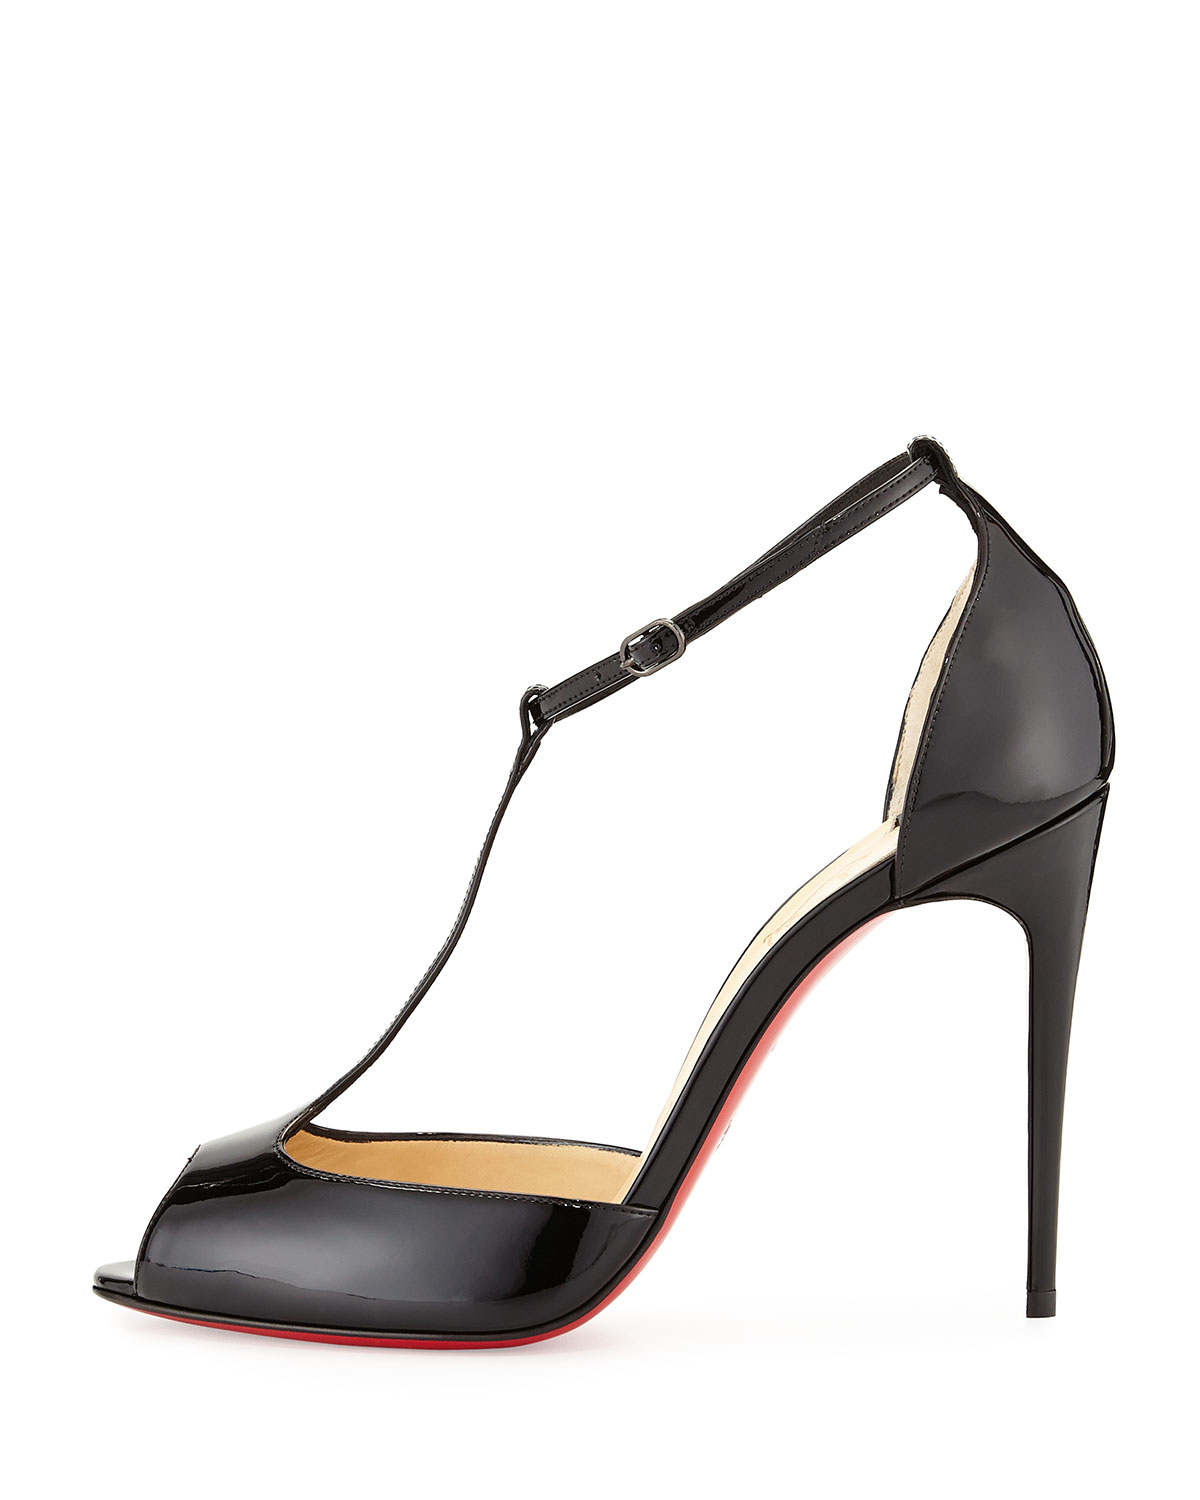 6bbaa2f78b07 blue christian louboutin shoes - Christian louboutin Senora Patent T-strap Red  Sole Sandal in